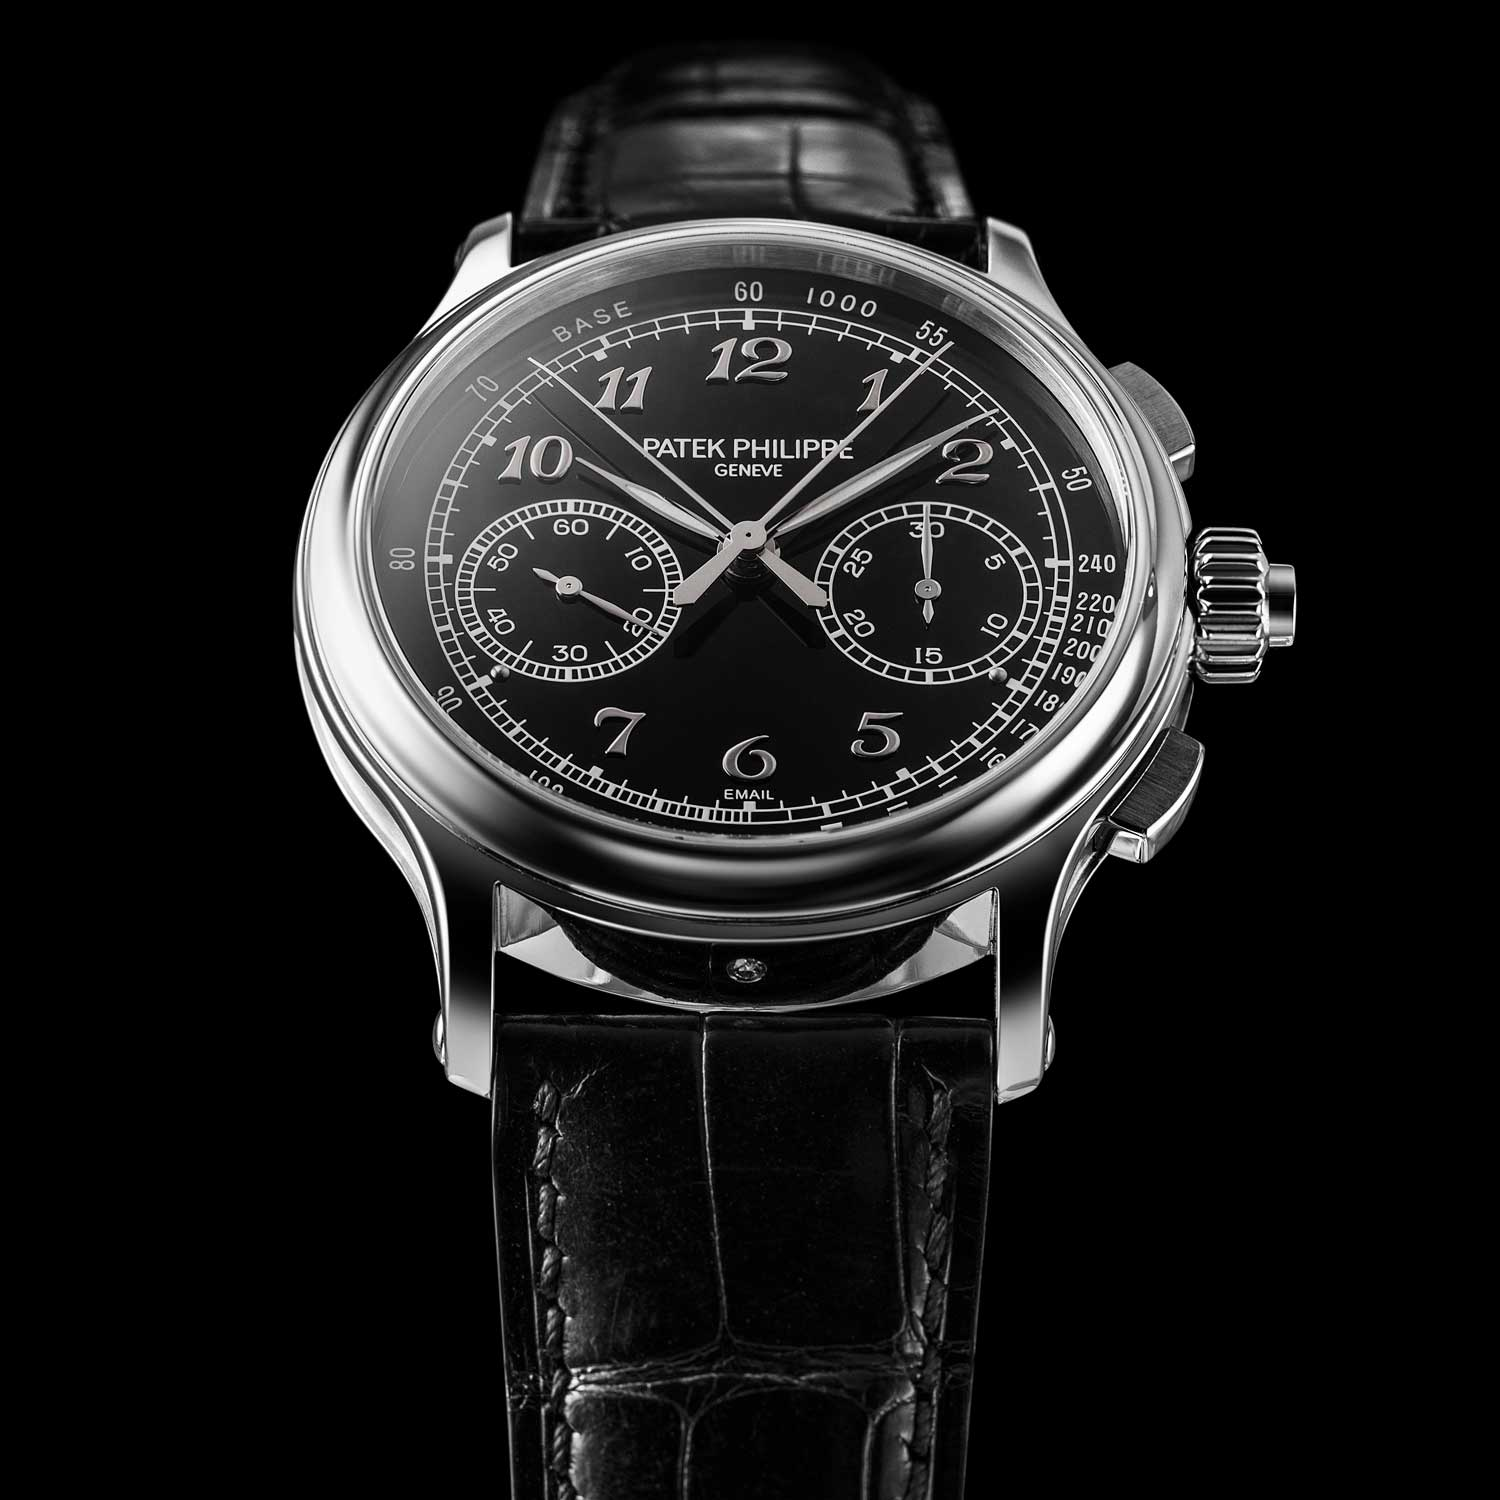 The immensely revered, Patek Philippe 5370P-001 Split-Second Chronograph with a black enamel dial and gold applied Breguet numerals; the watch was launched in 2015 (©Revolution)